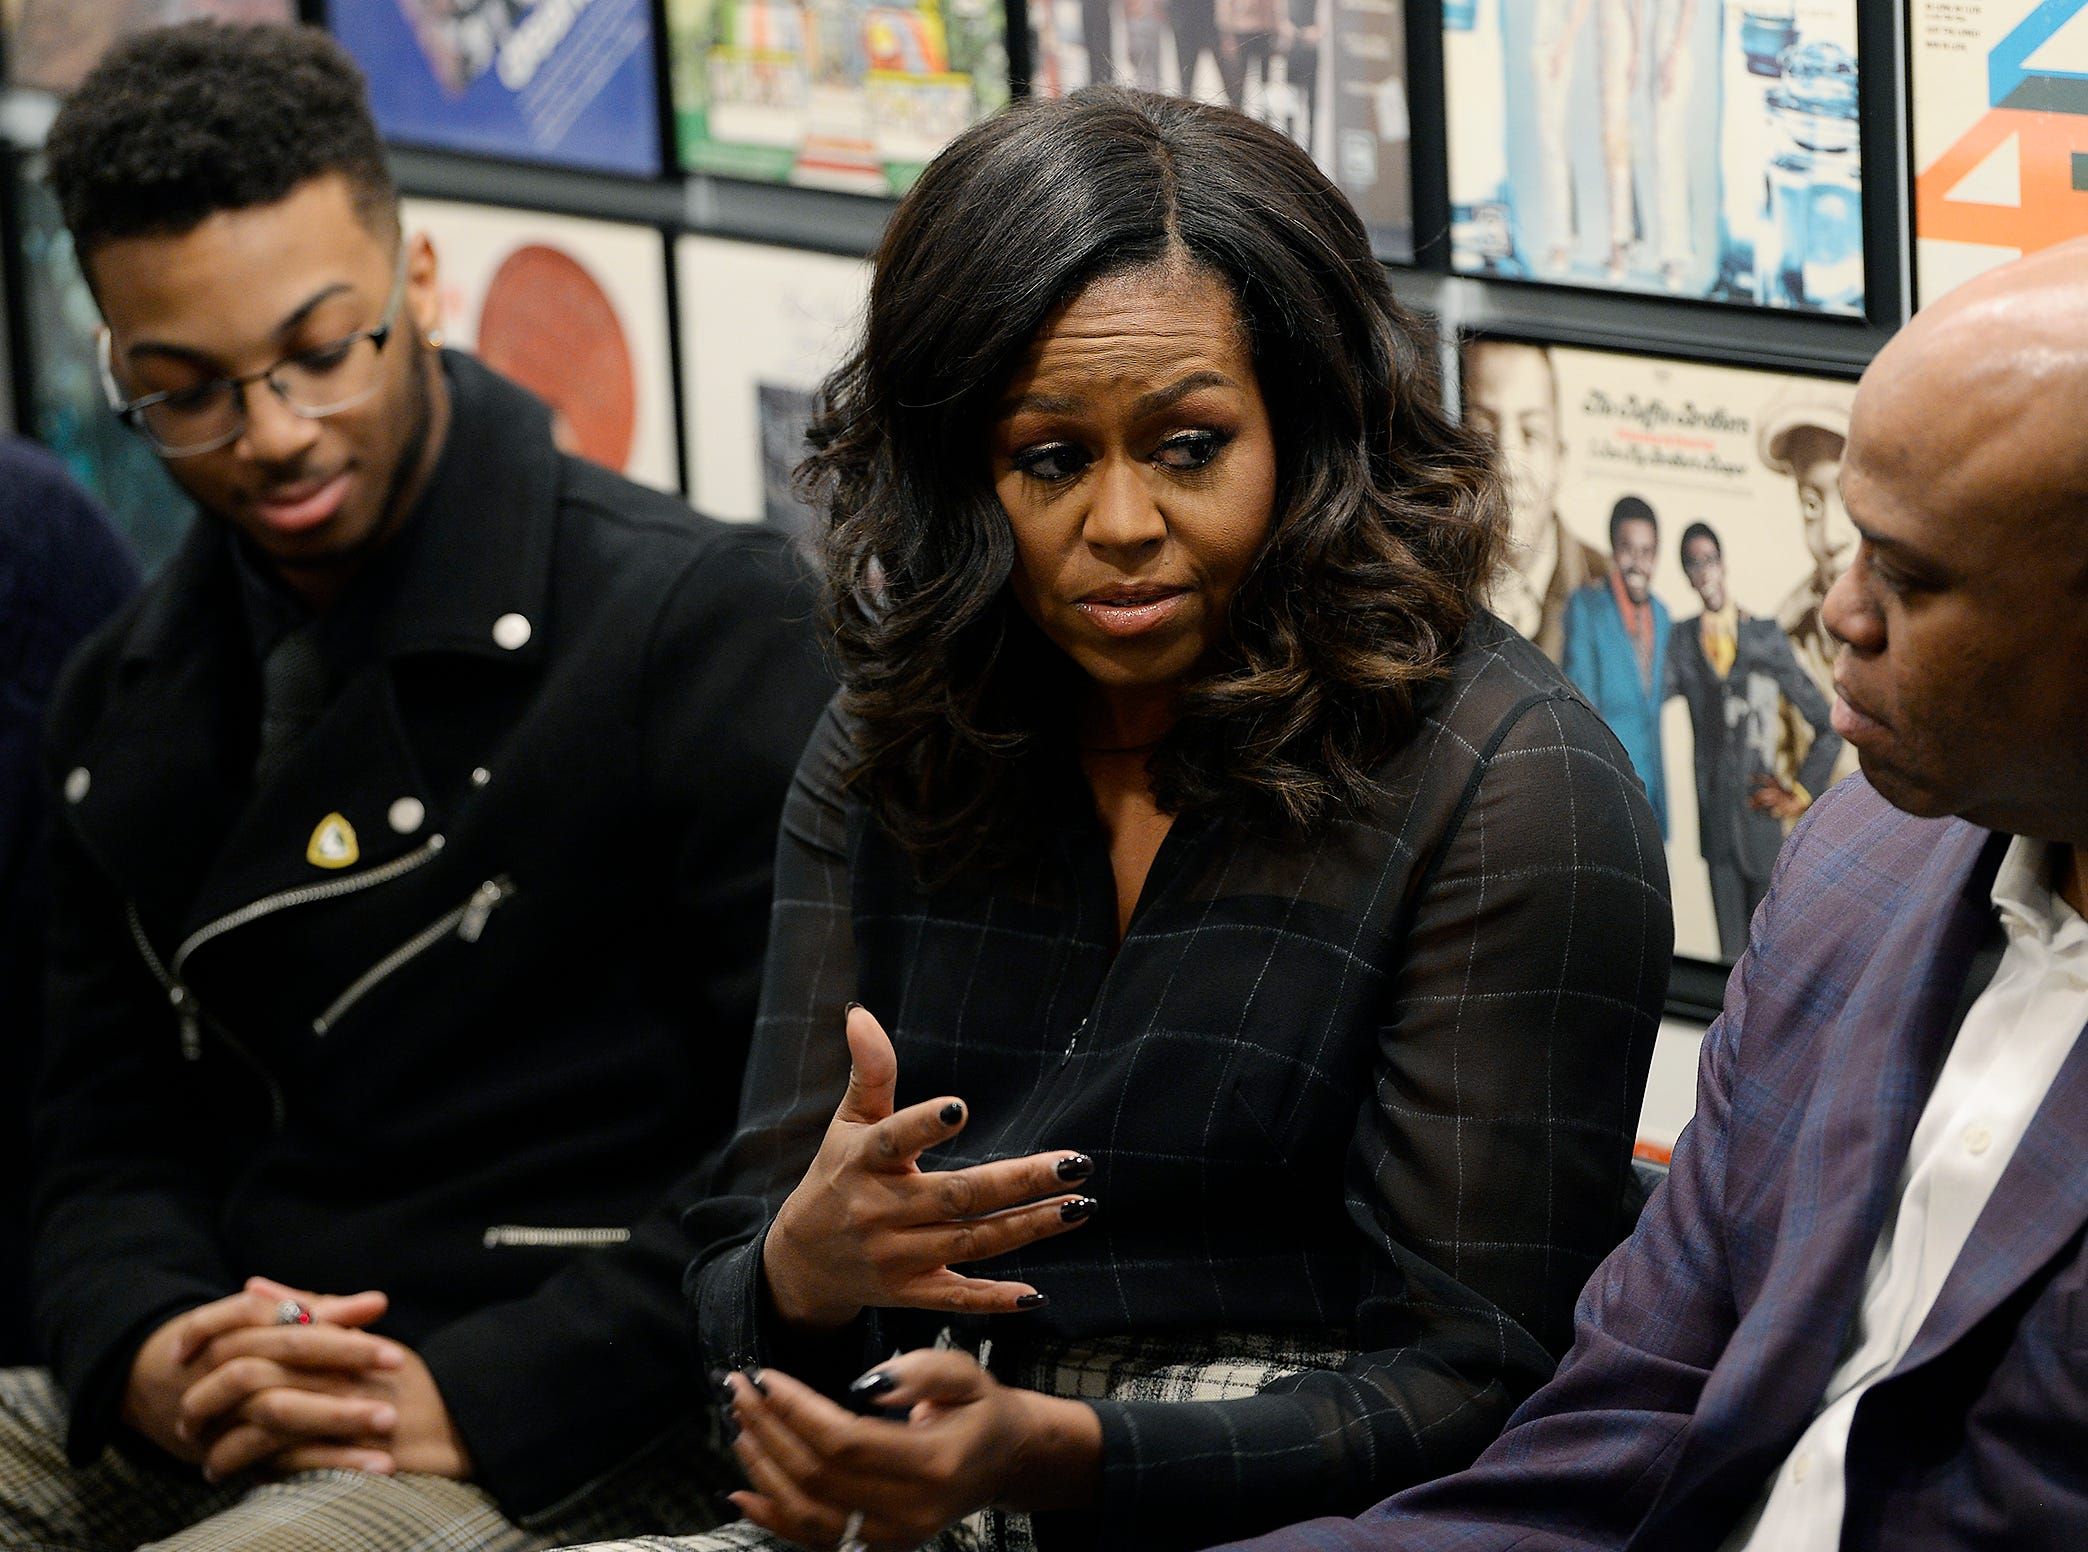 Michelle Obama participates in a group discussion with students from Wayne St. University.